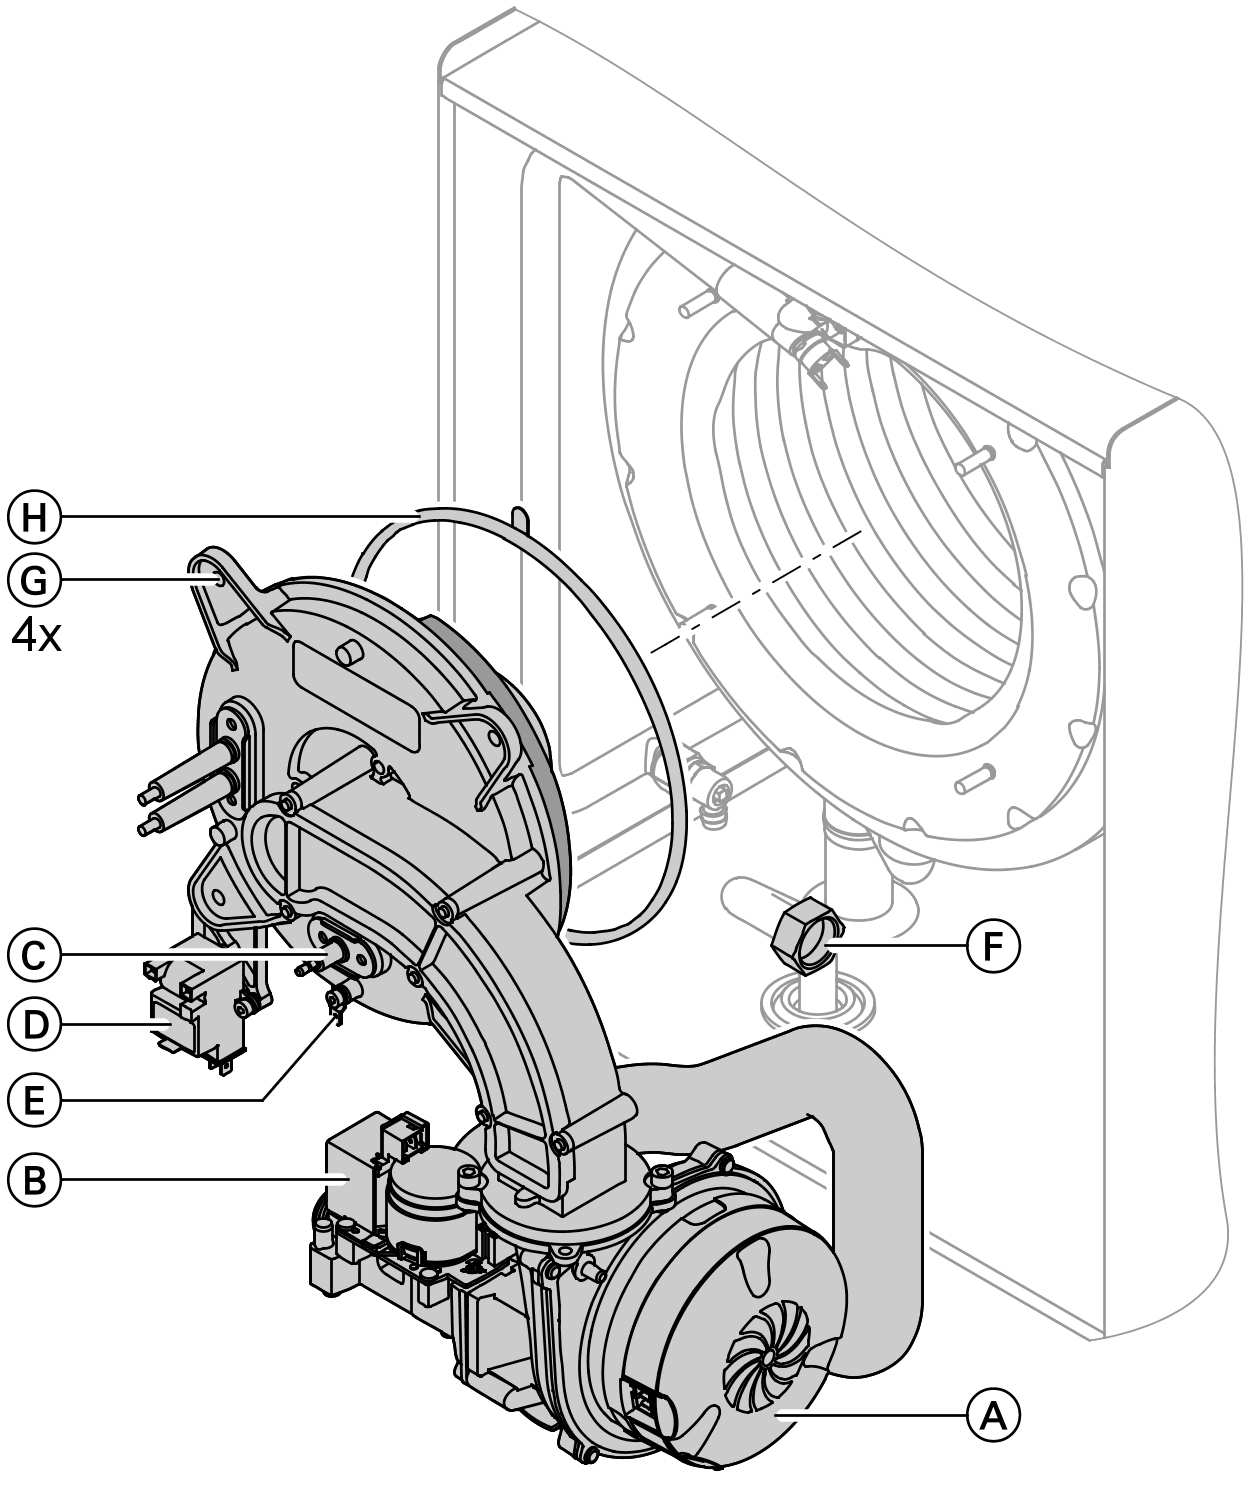 viesmann service instructions vitodens 300 w for contractors pdf Subaru Engine Timing Chain missioning inspection maintenance further details regarding the individual steps cont the